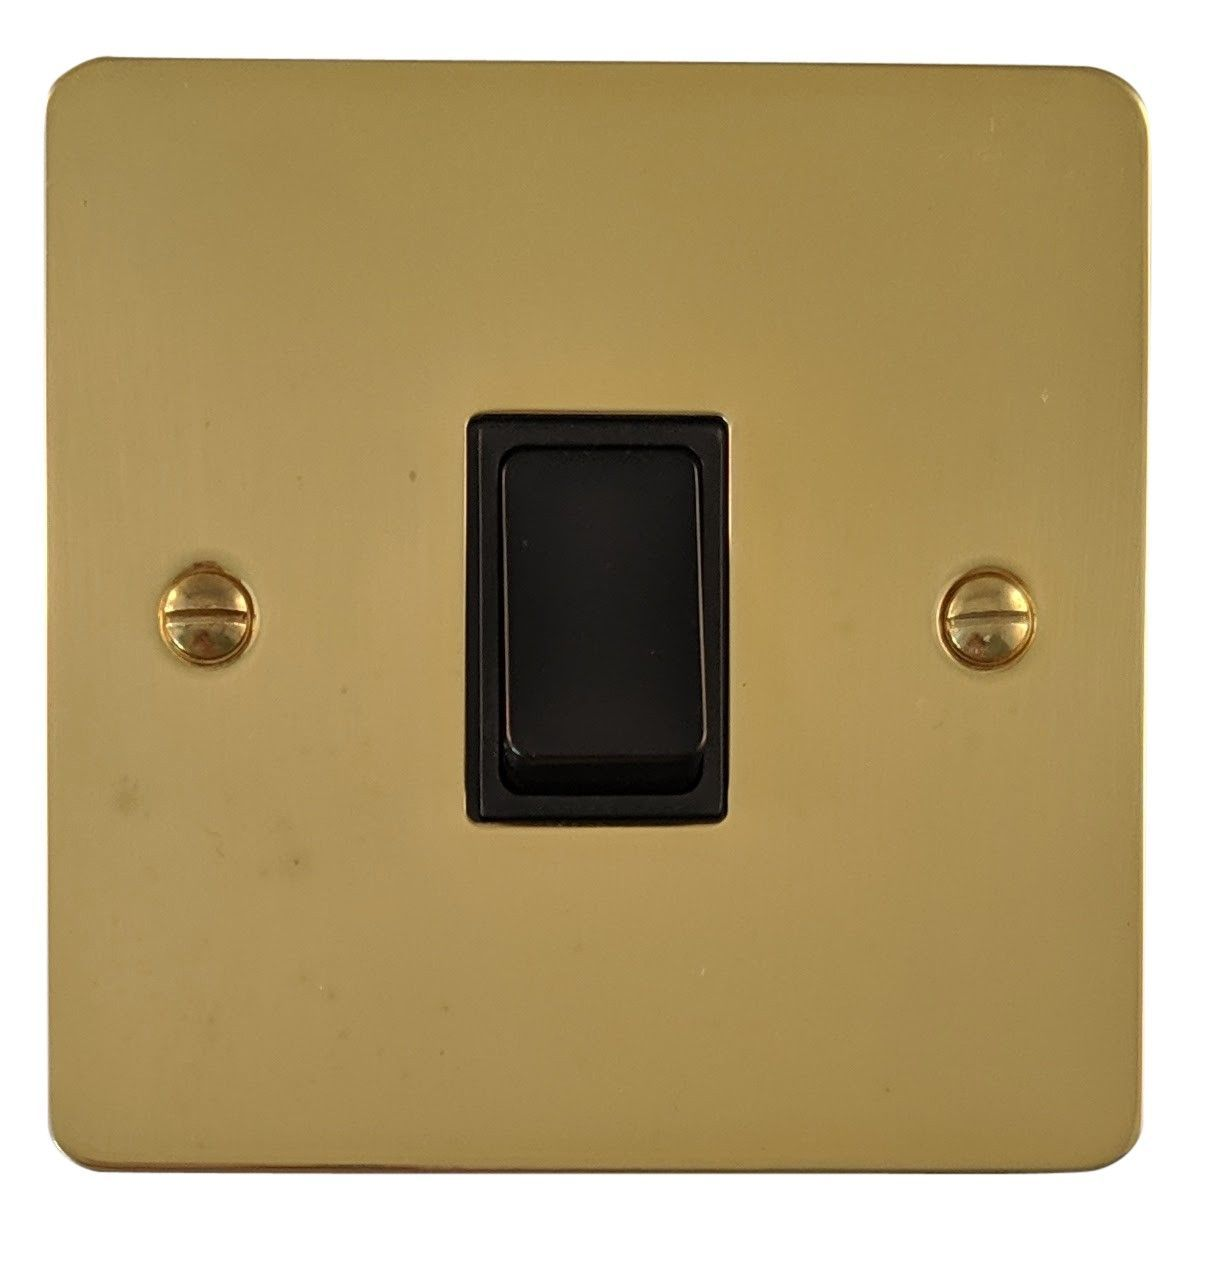 G&H FB1B Flat Plate Polished Brass 1 Gang 1 or 2 Way Rocker Light Switch